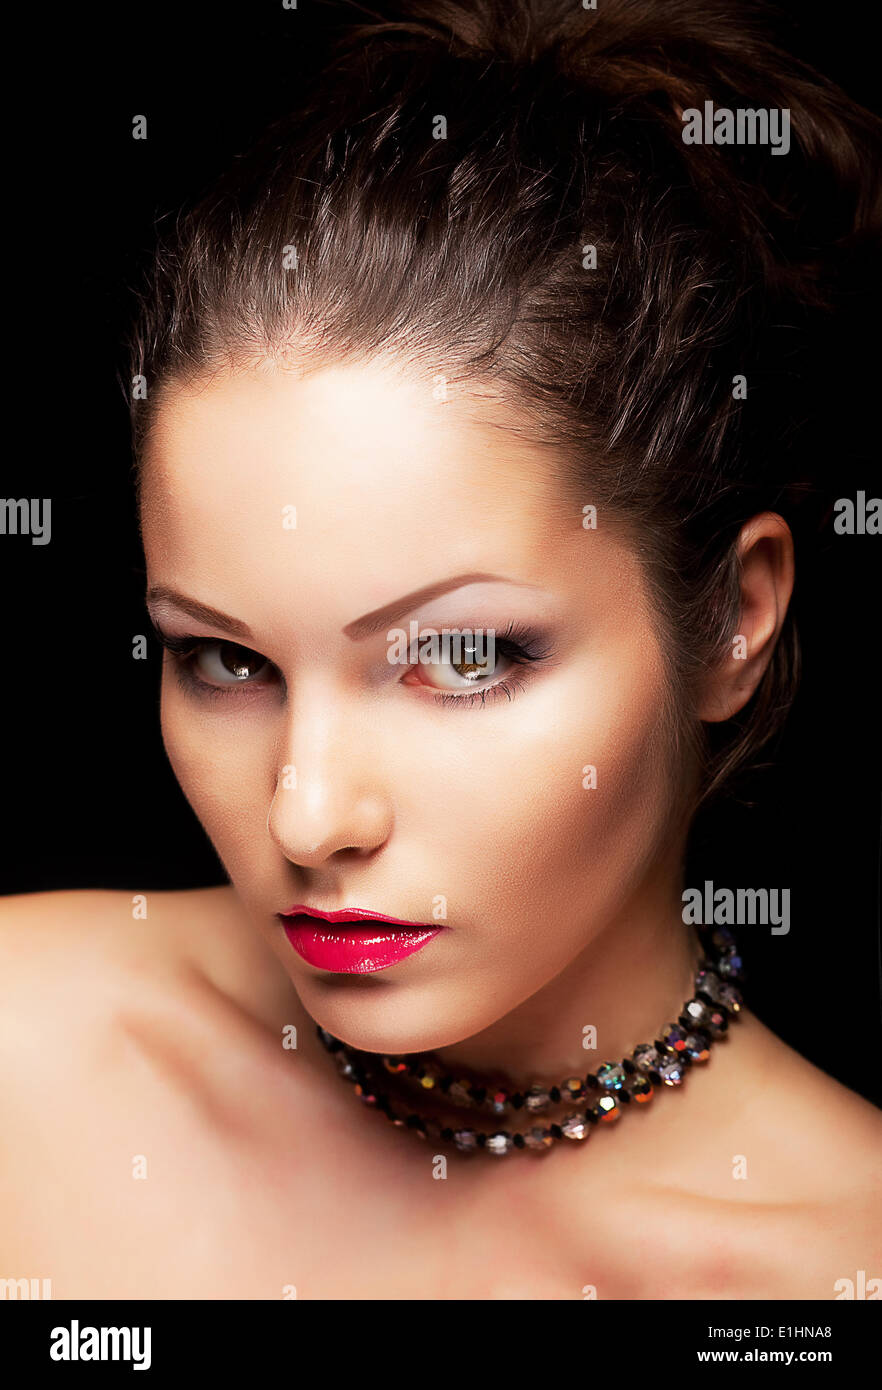 Lordly aristocratic fashionable female looking. Beauty young face - Stock Image